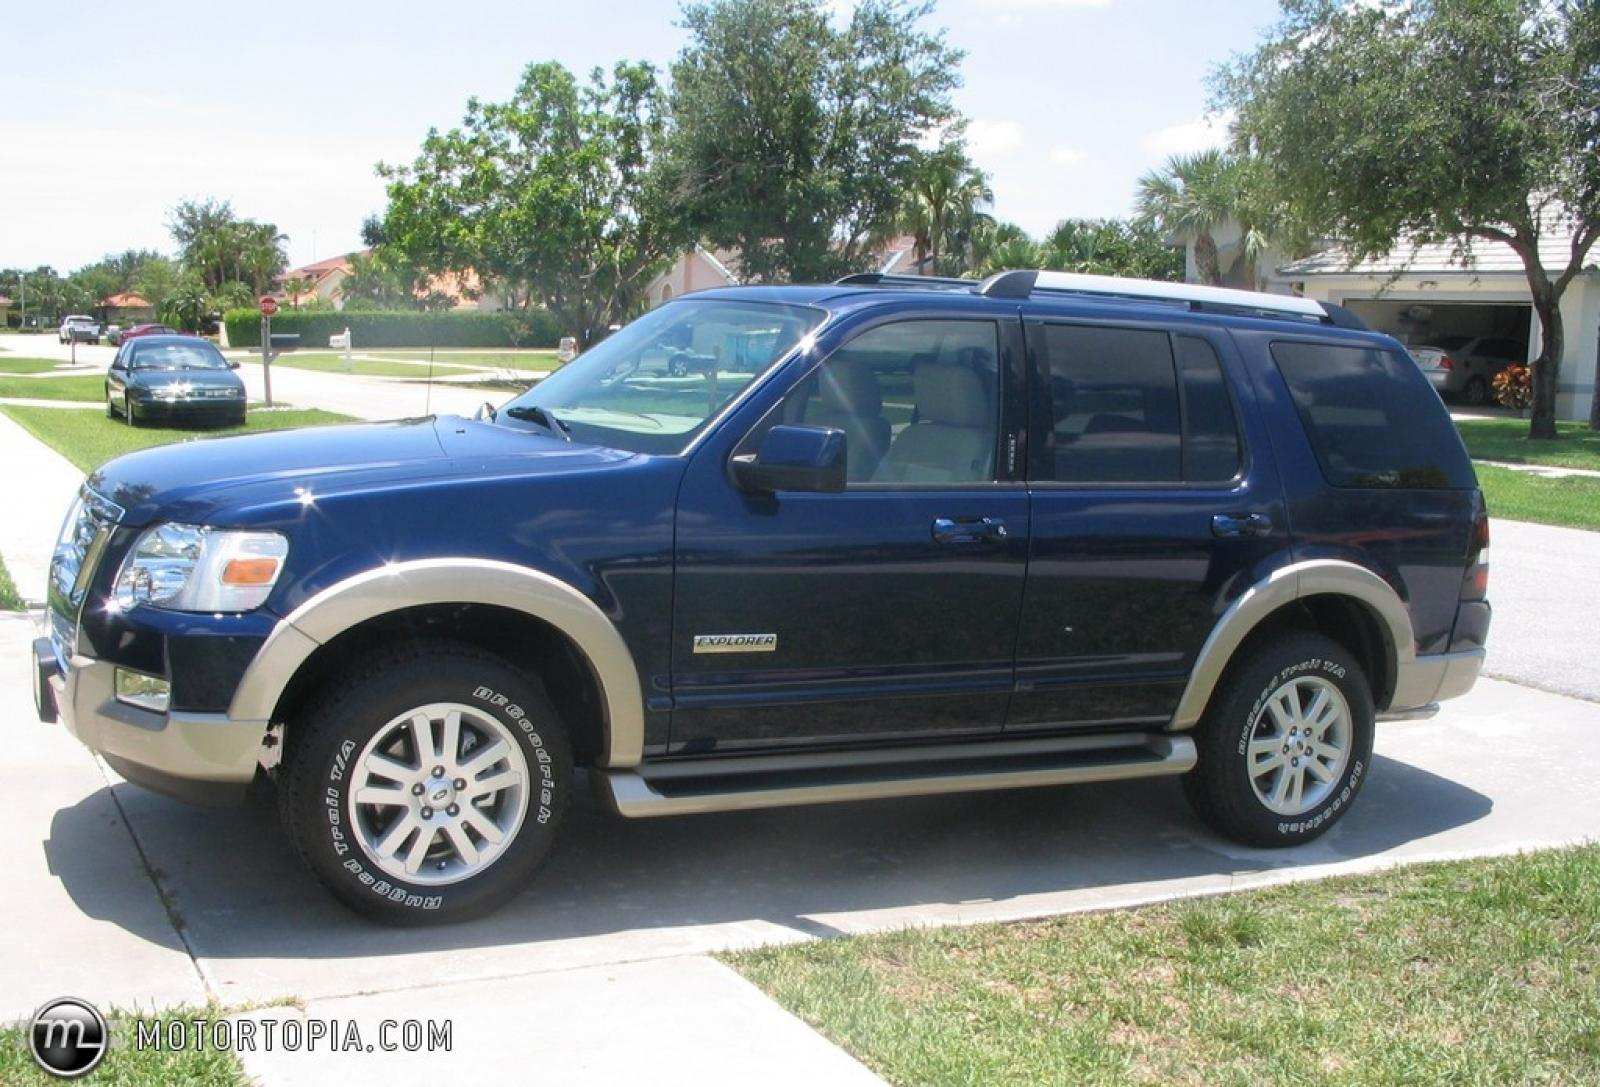 2006 ford explorer information and photos zombiedrive. Black Bedroom Furniture Sets. Home Design Ideas